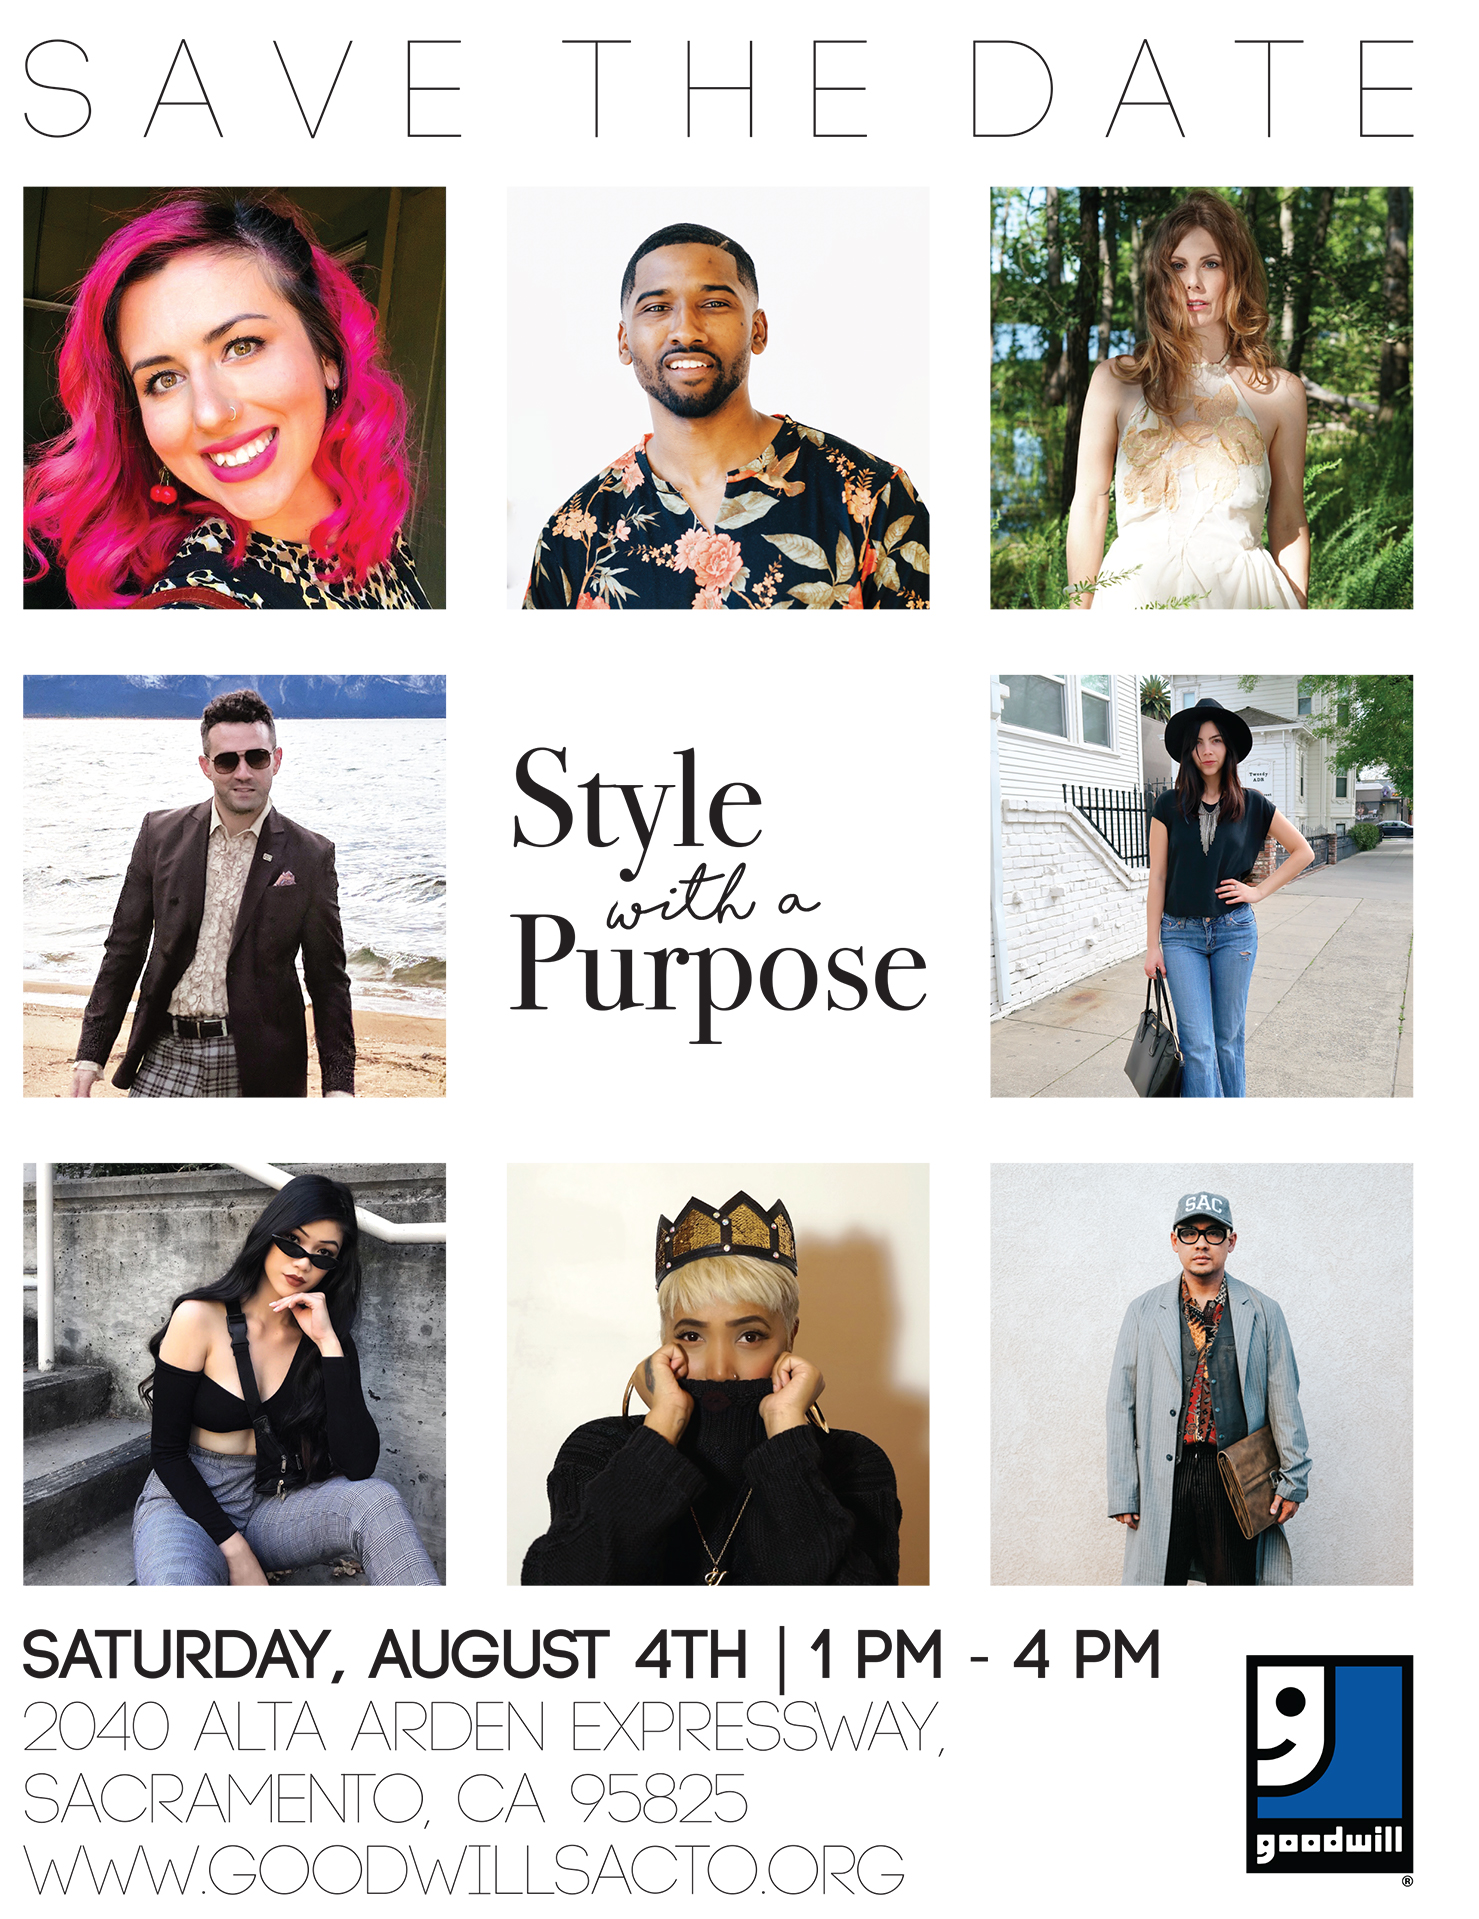 Goodwill Style With a Purpose - Join Lady Katherine on Saturday, August 4th from 1pm to 4pm for Style with a Purpose: Back to School edition! She will be joining several local stylists at the Goodwill Alta Arden store to share tips for finding and assembling top fashions at bargain prices. Come to chat with these experts and get personalized advice on how to make thrifting fun and rewarding. You will have a chance to browse the shelves as well as the special racks of merchandise that have been curated by each of the stylists.Light snacks and beverages will be available and admission is free.